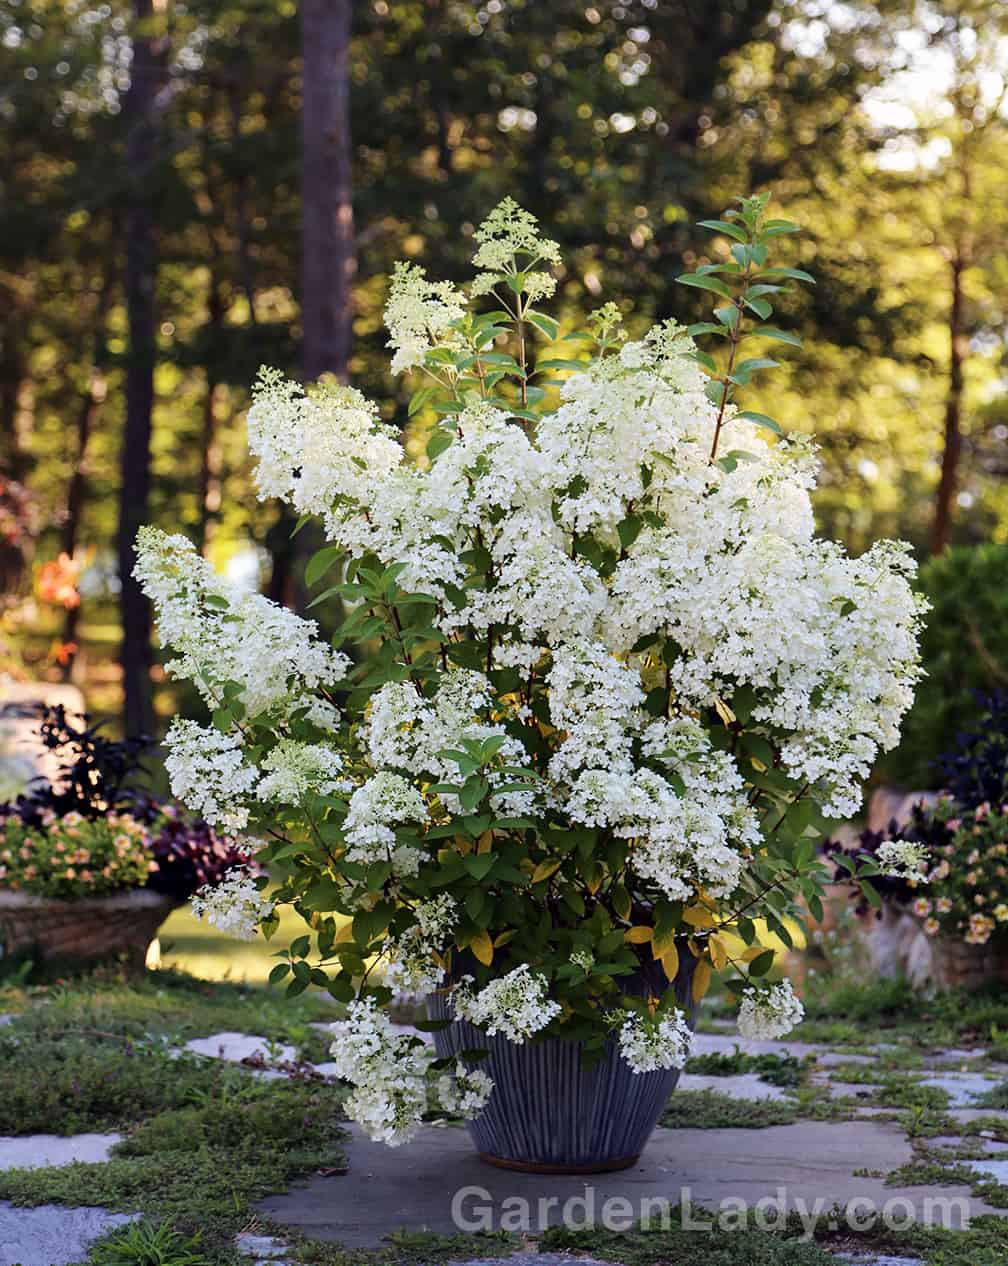 Gardenlady Growing Hydrangeas In Containers